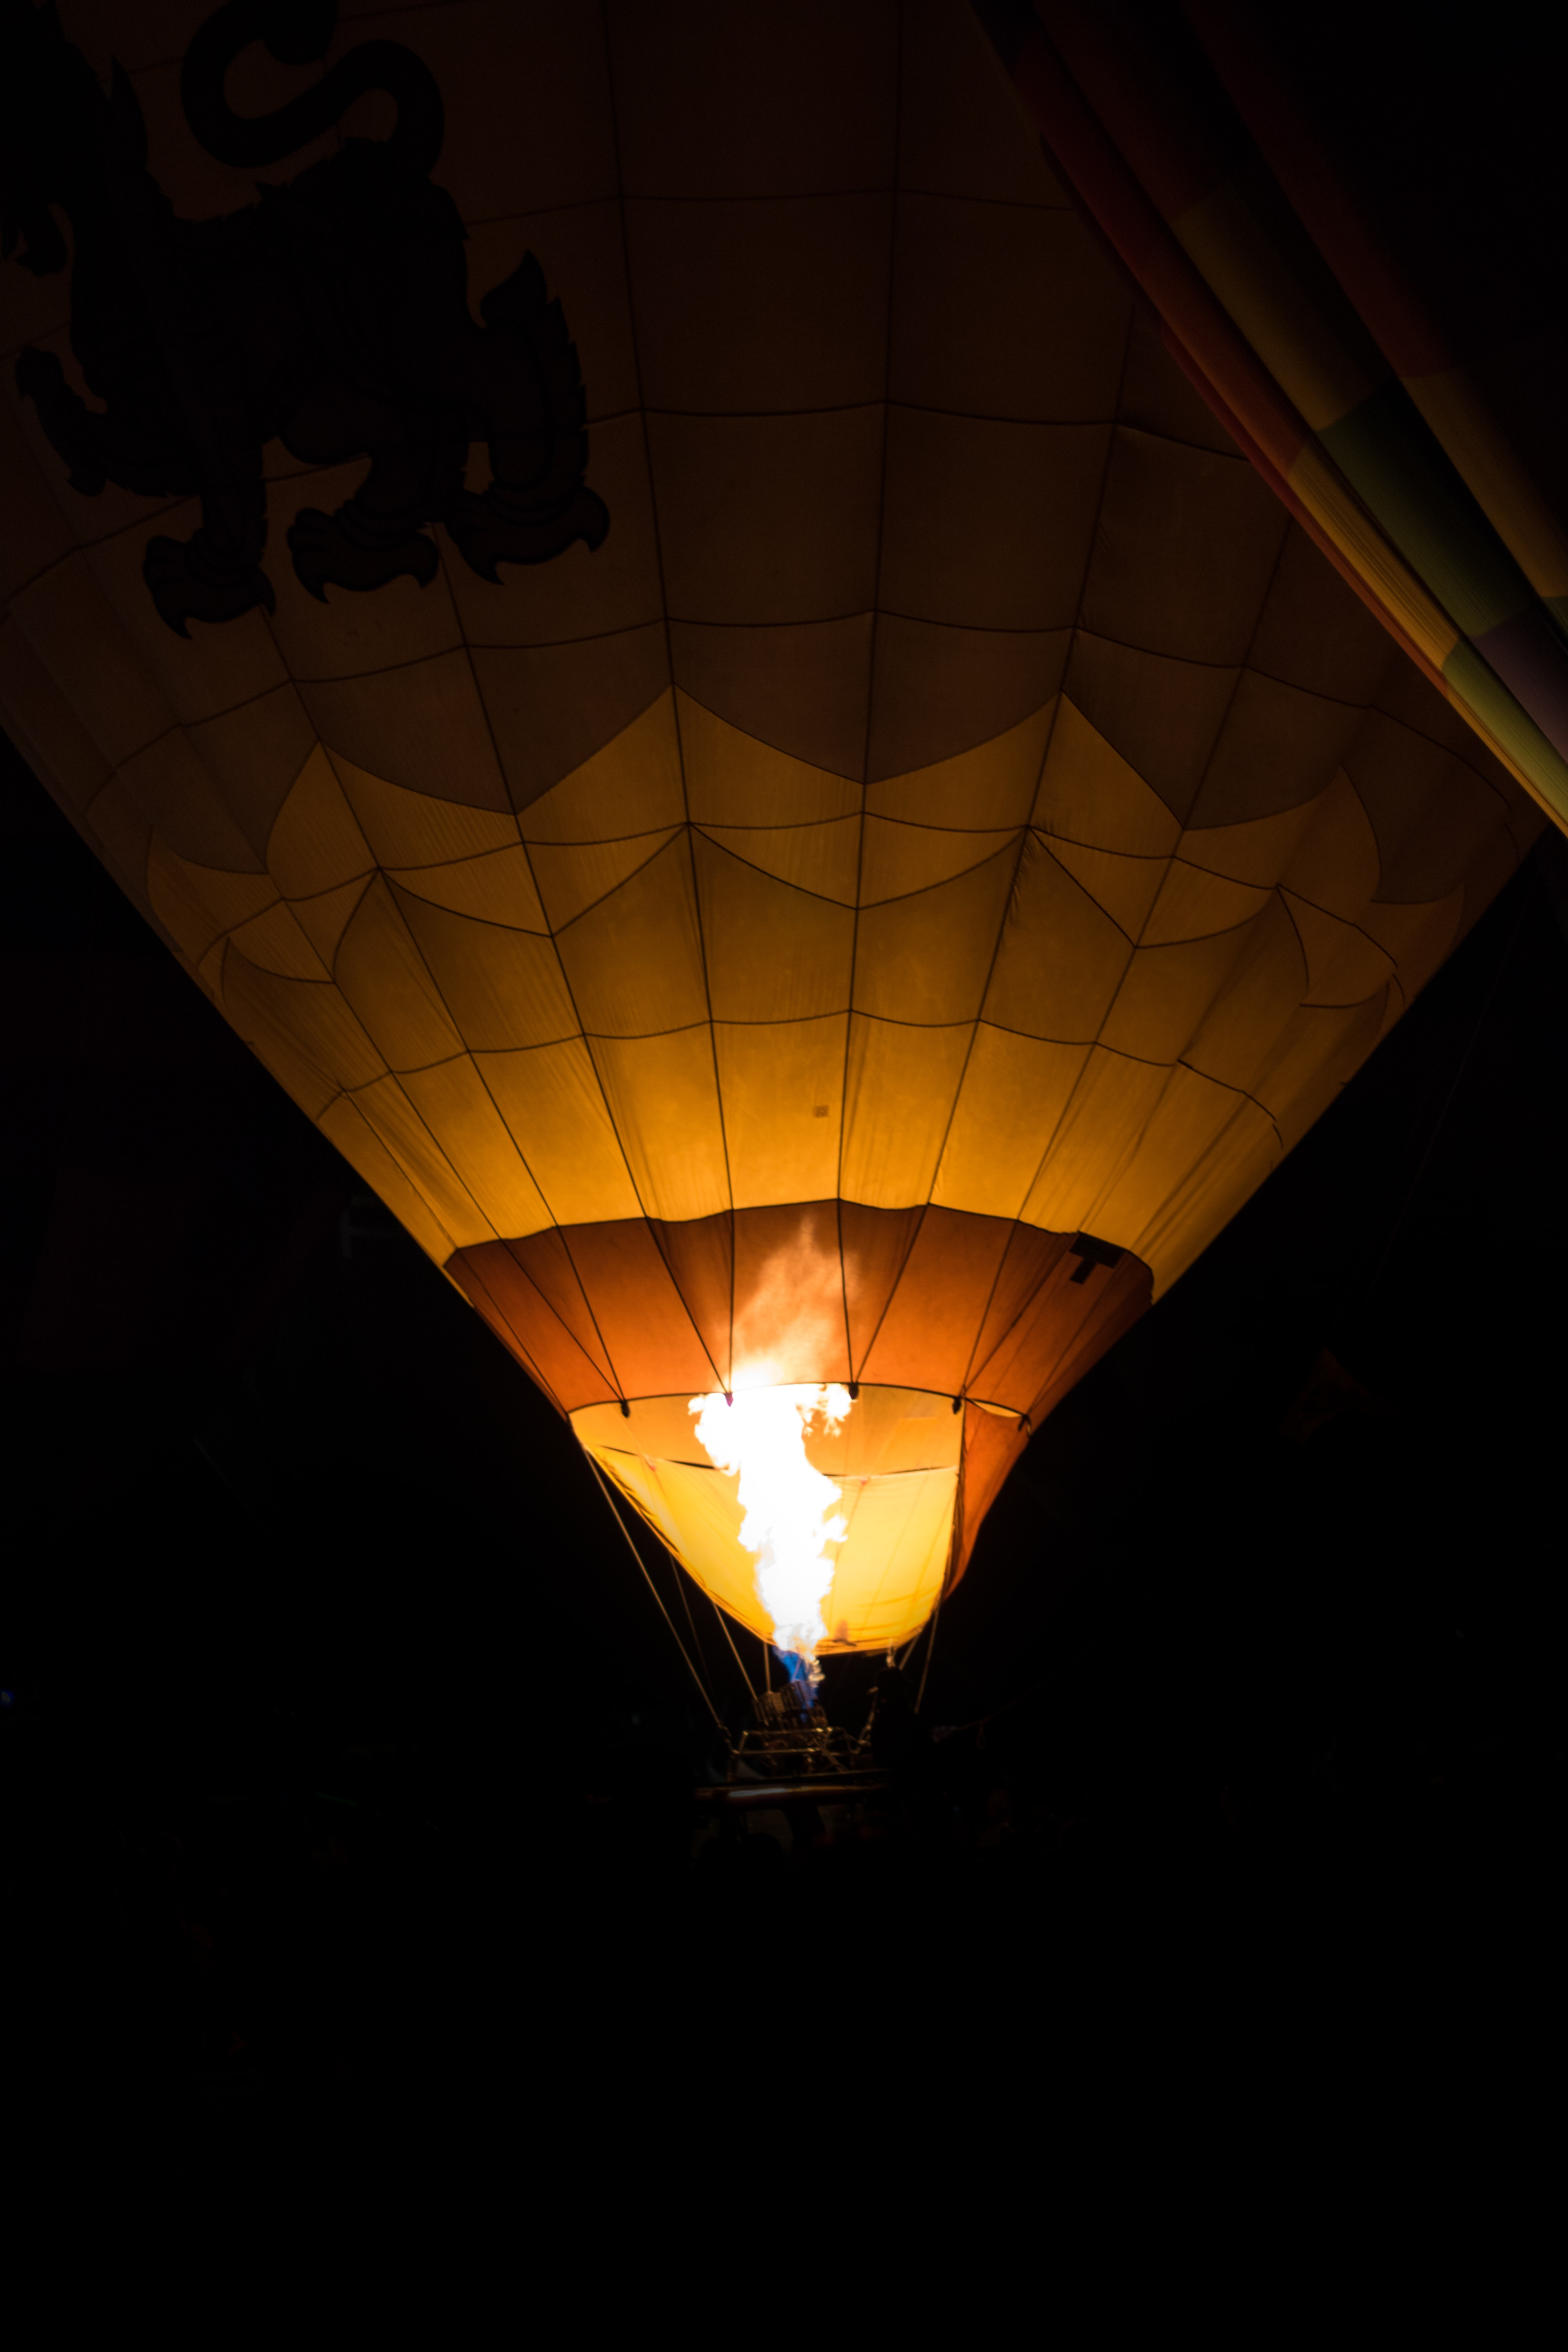 lighted hot air balloon during night time